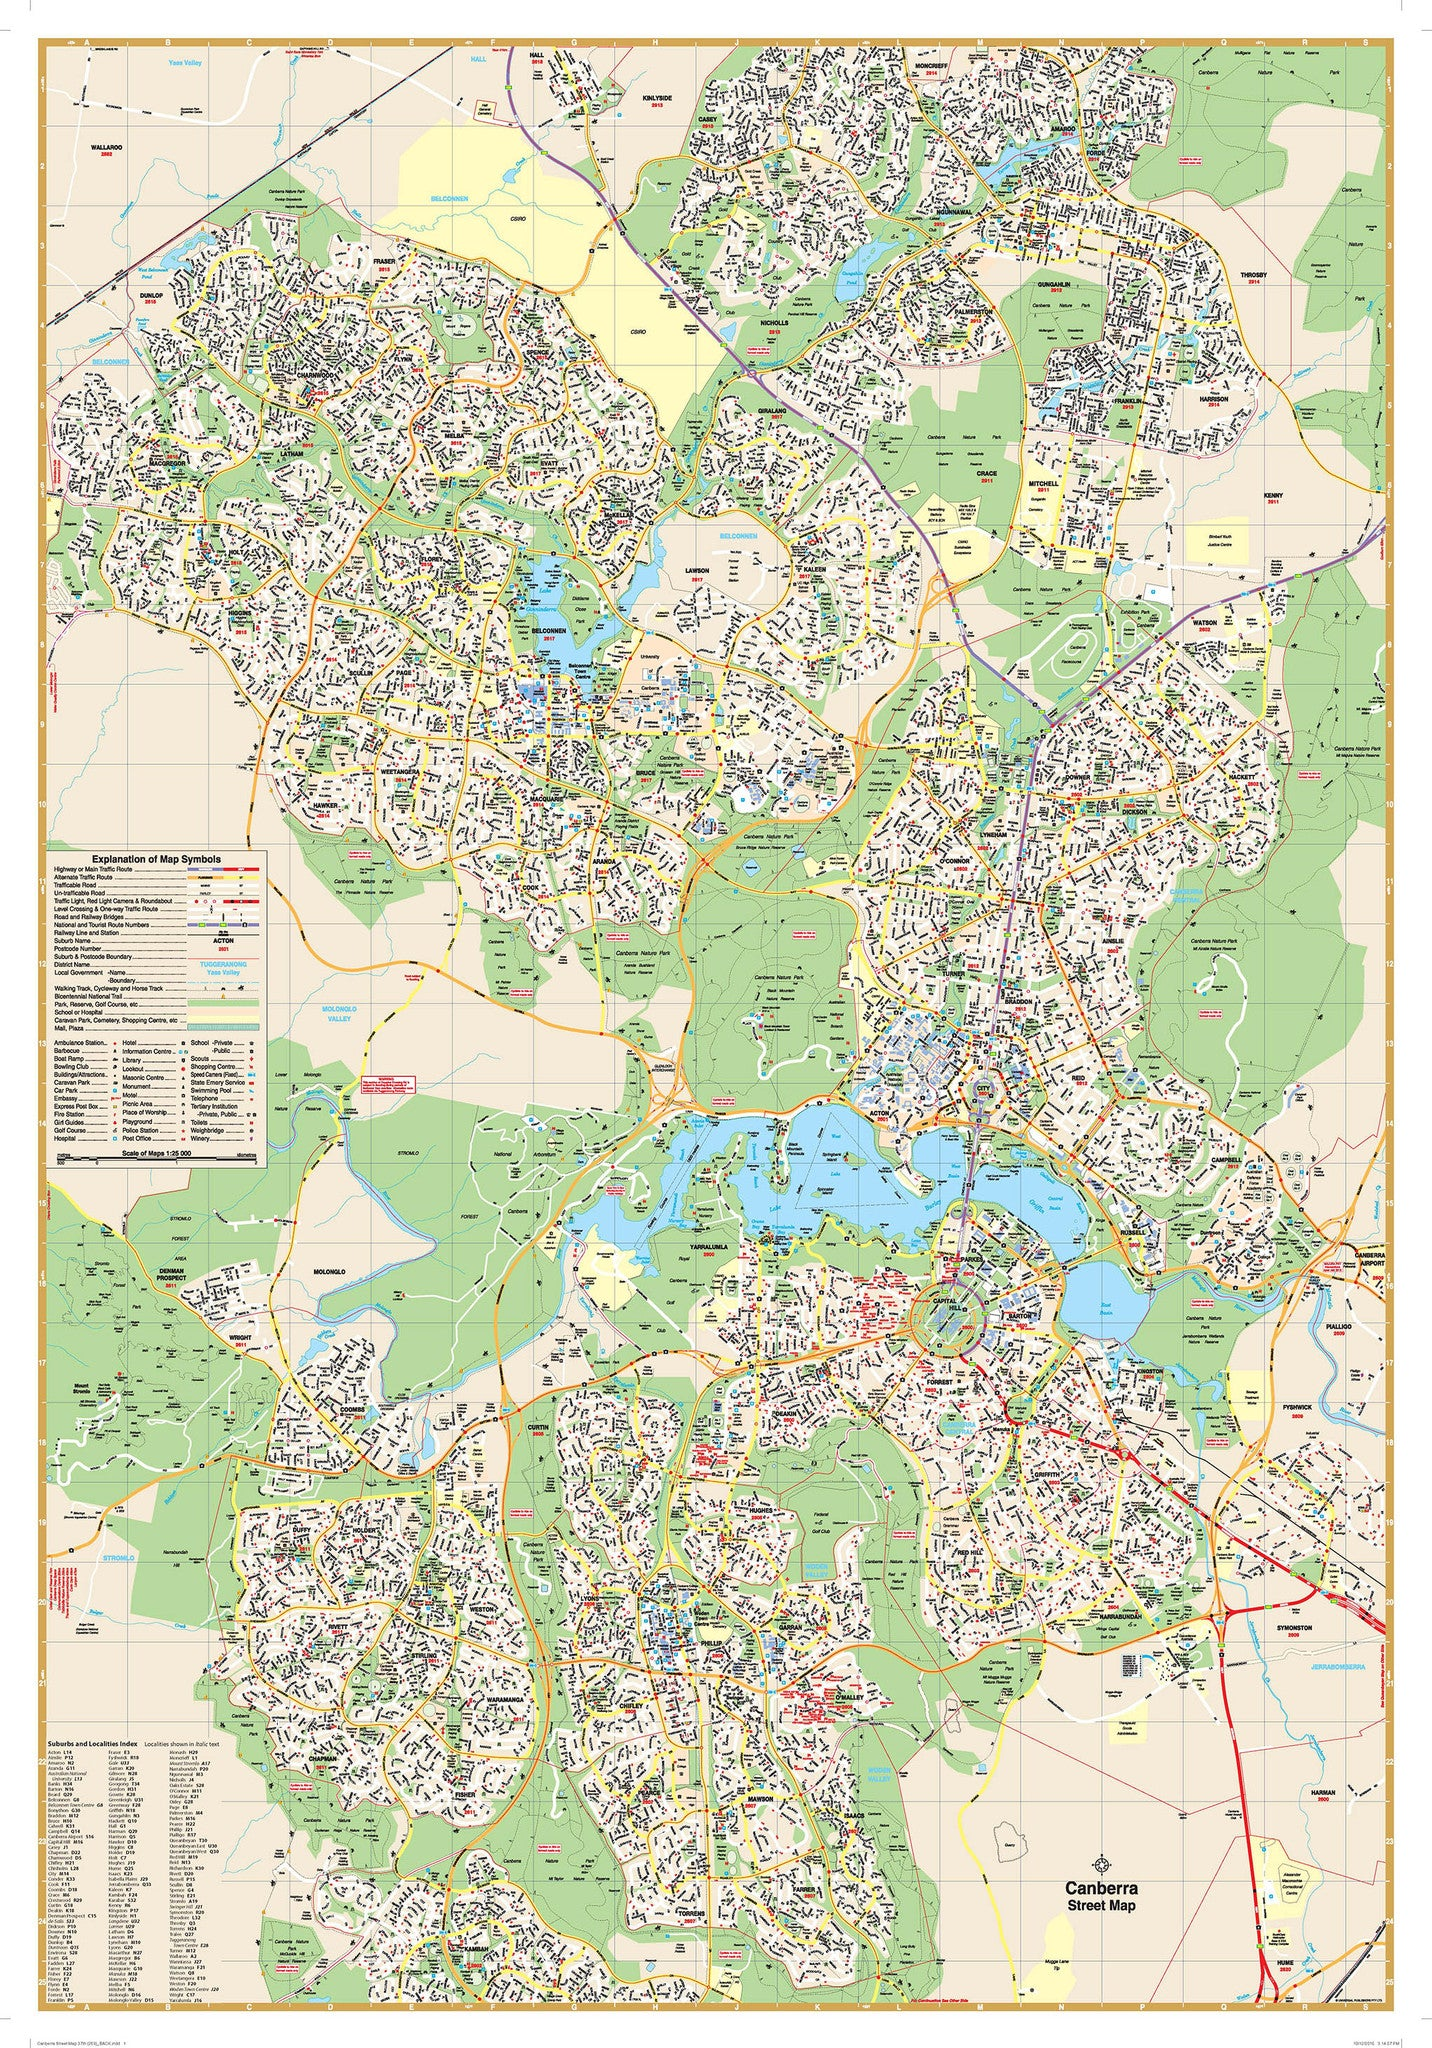 Canberra Ubd Map Buy Map Of Canberra Mapworld